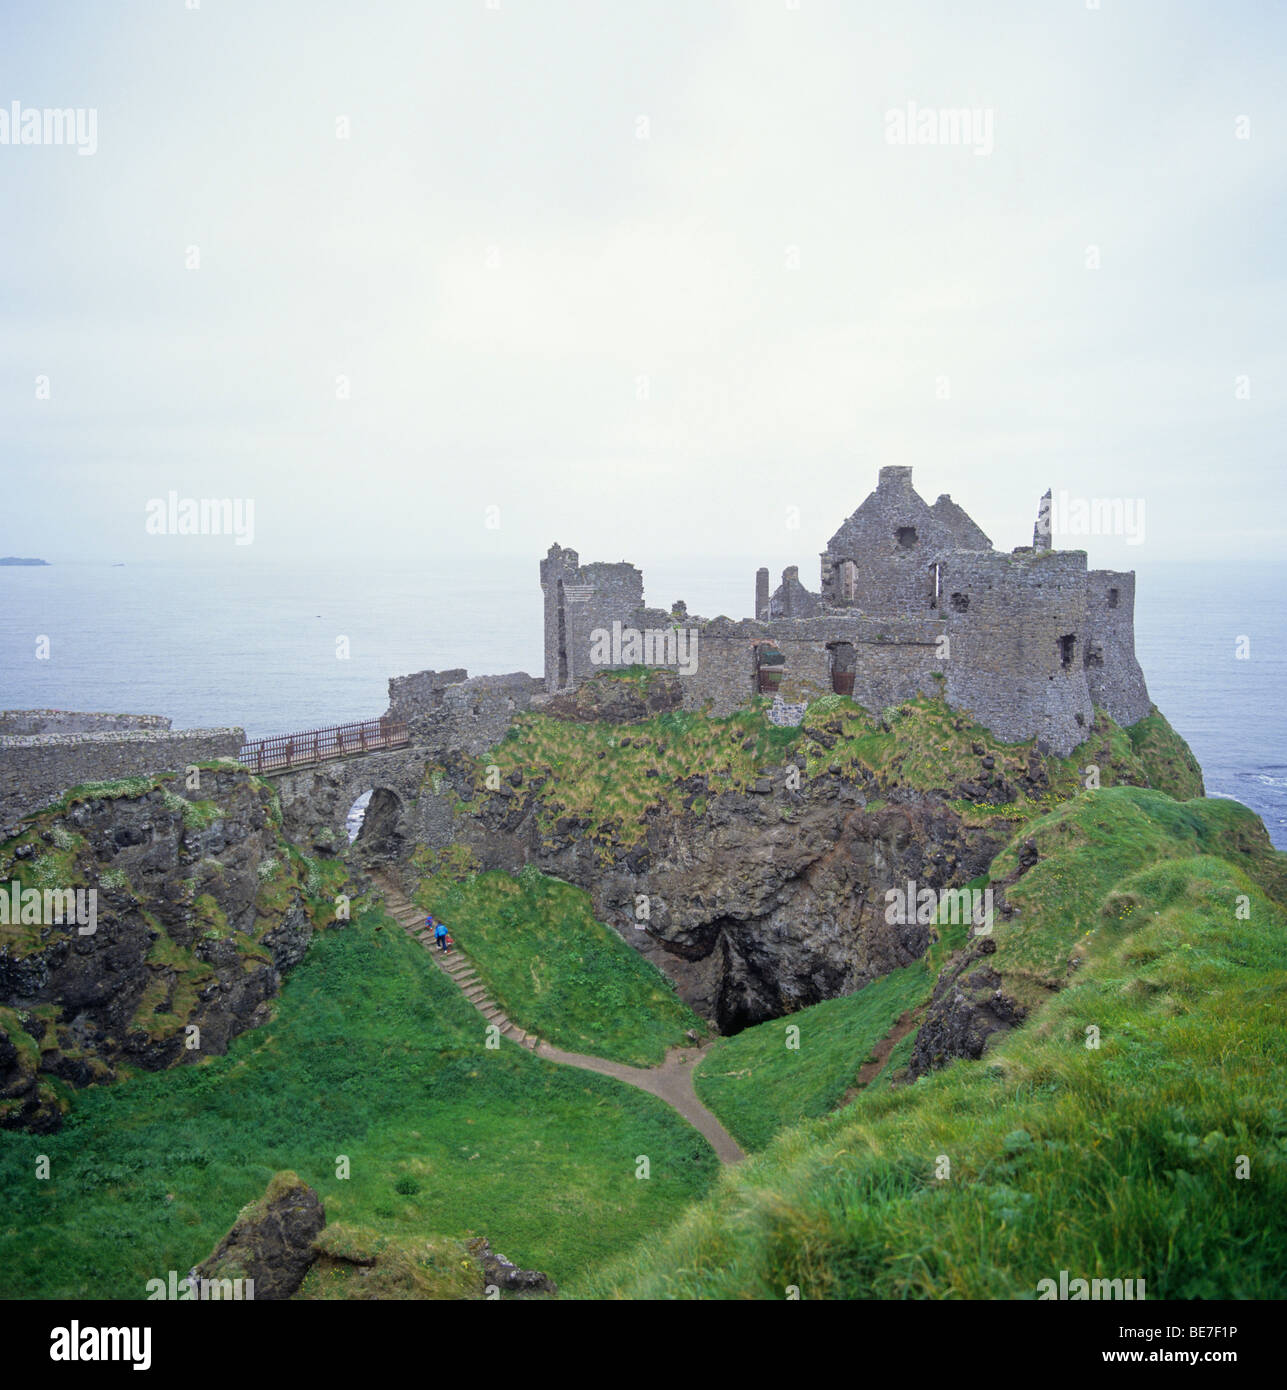 ruinsite of dunluce castle - area of giant's causeway coast - county of antrim - northern ireland - great britain - Stock Image